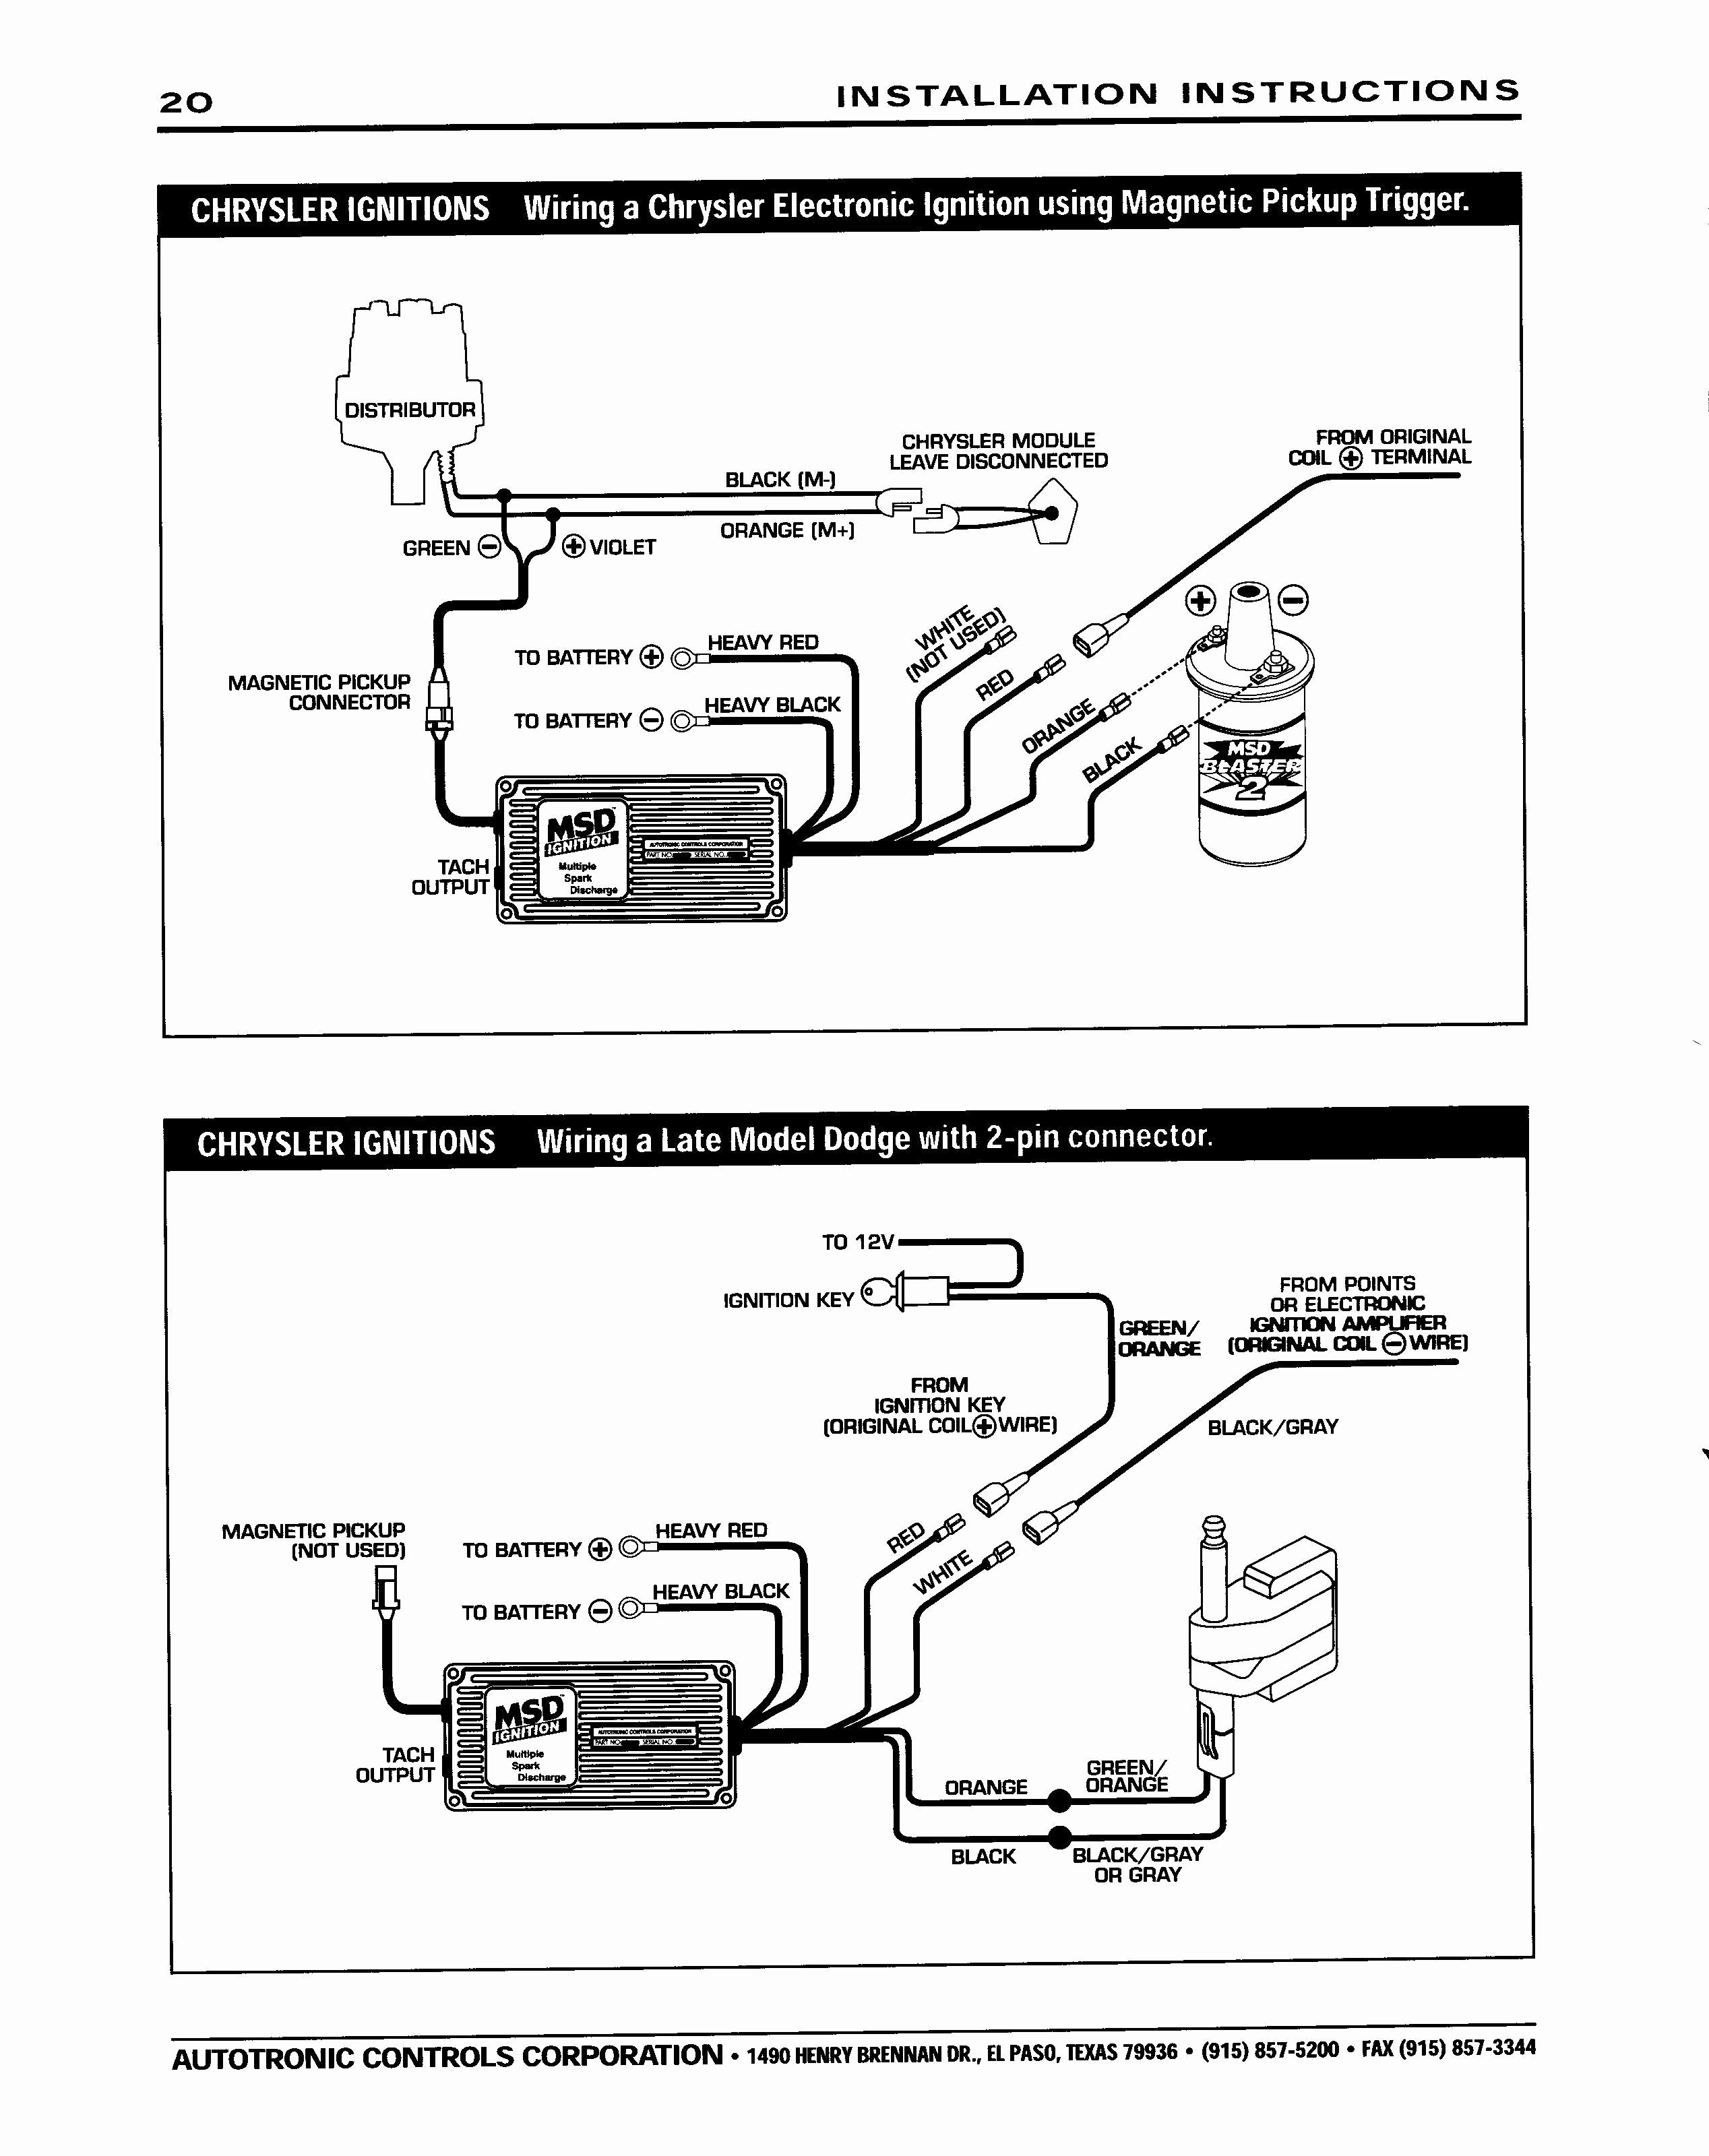 Chrysler Electronic Ignition Wiring Diagram Free Picture | Wiring - Mopar Electronic Ignition Wiring Diagram